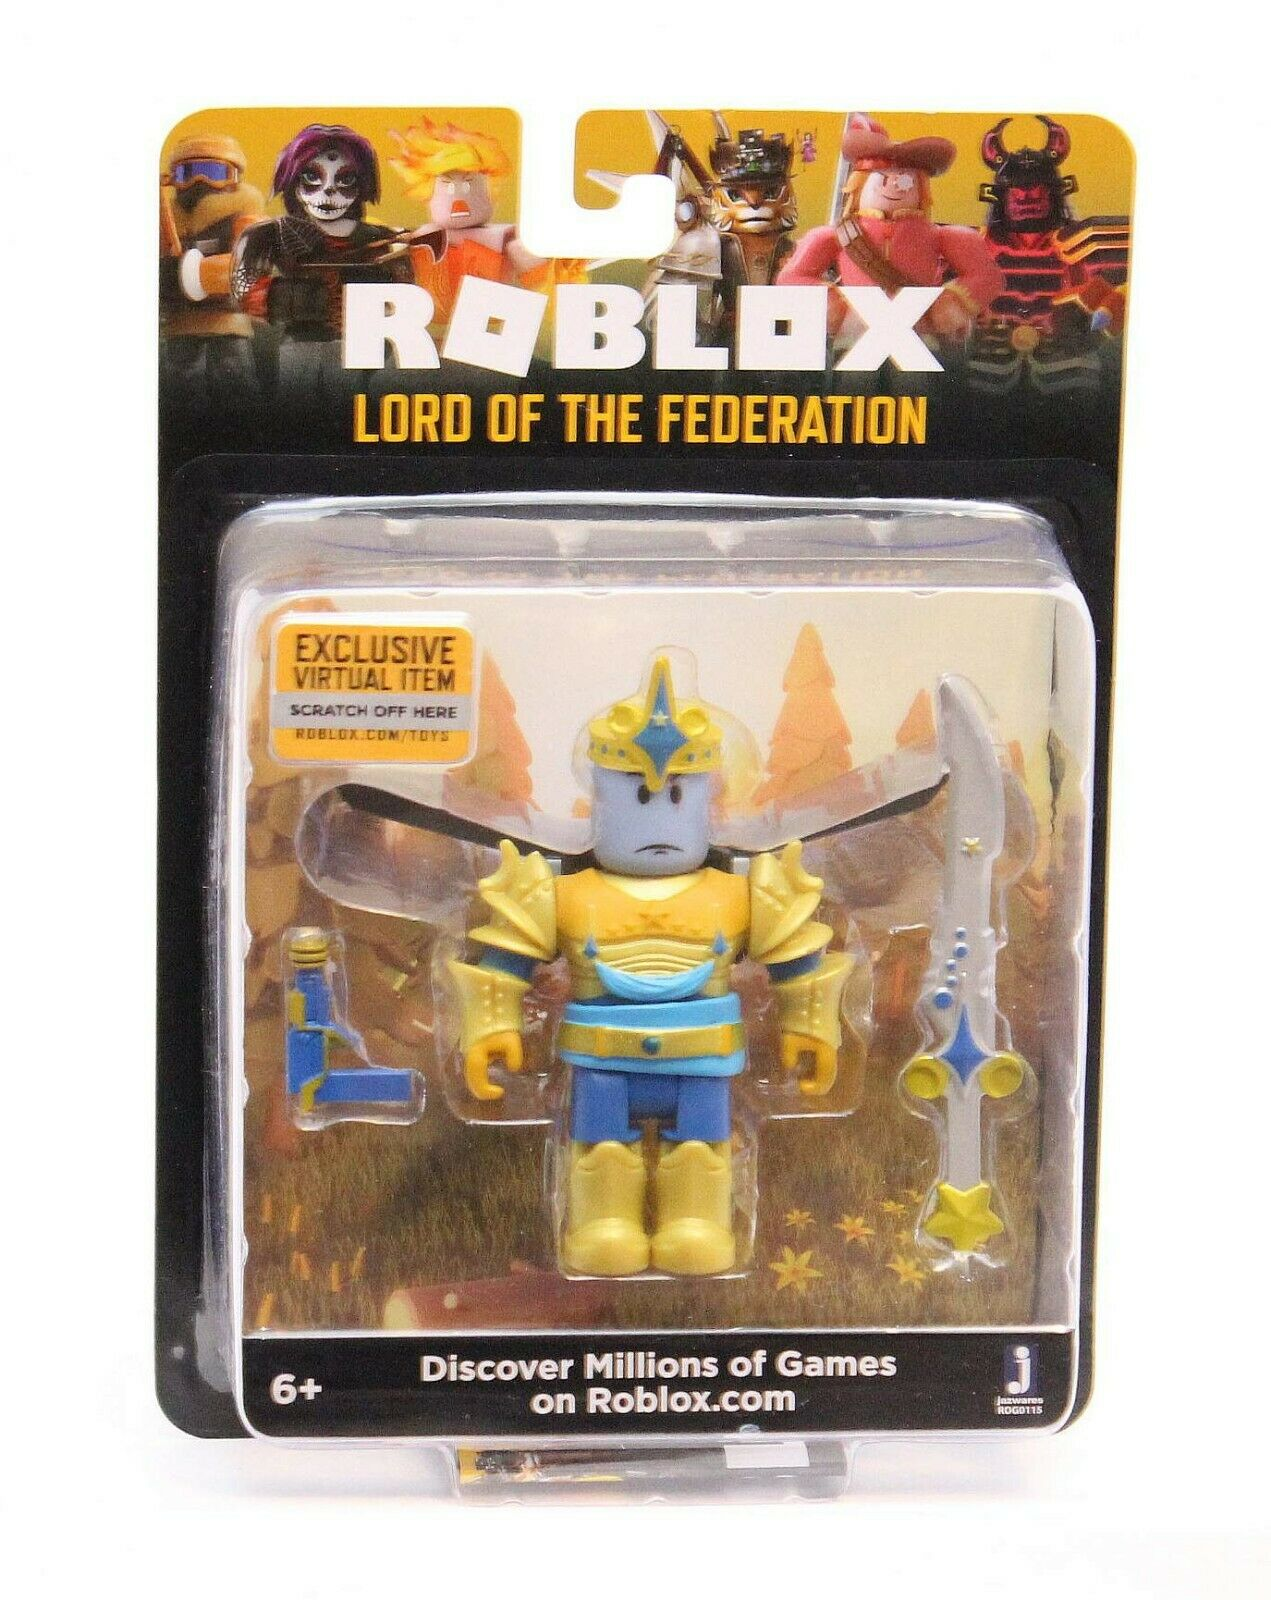 2019 Roblox Figure Lord Of The Federation W Exclusive Item